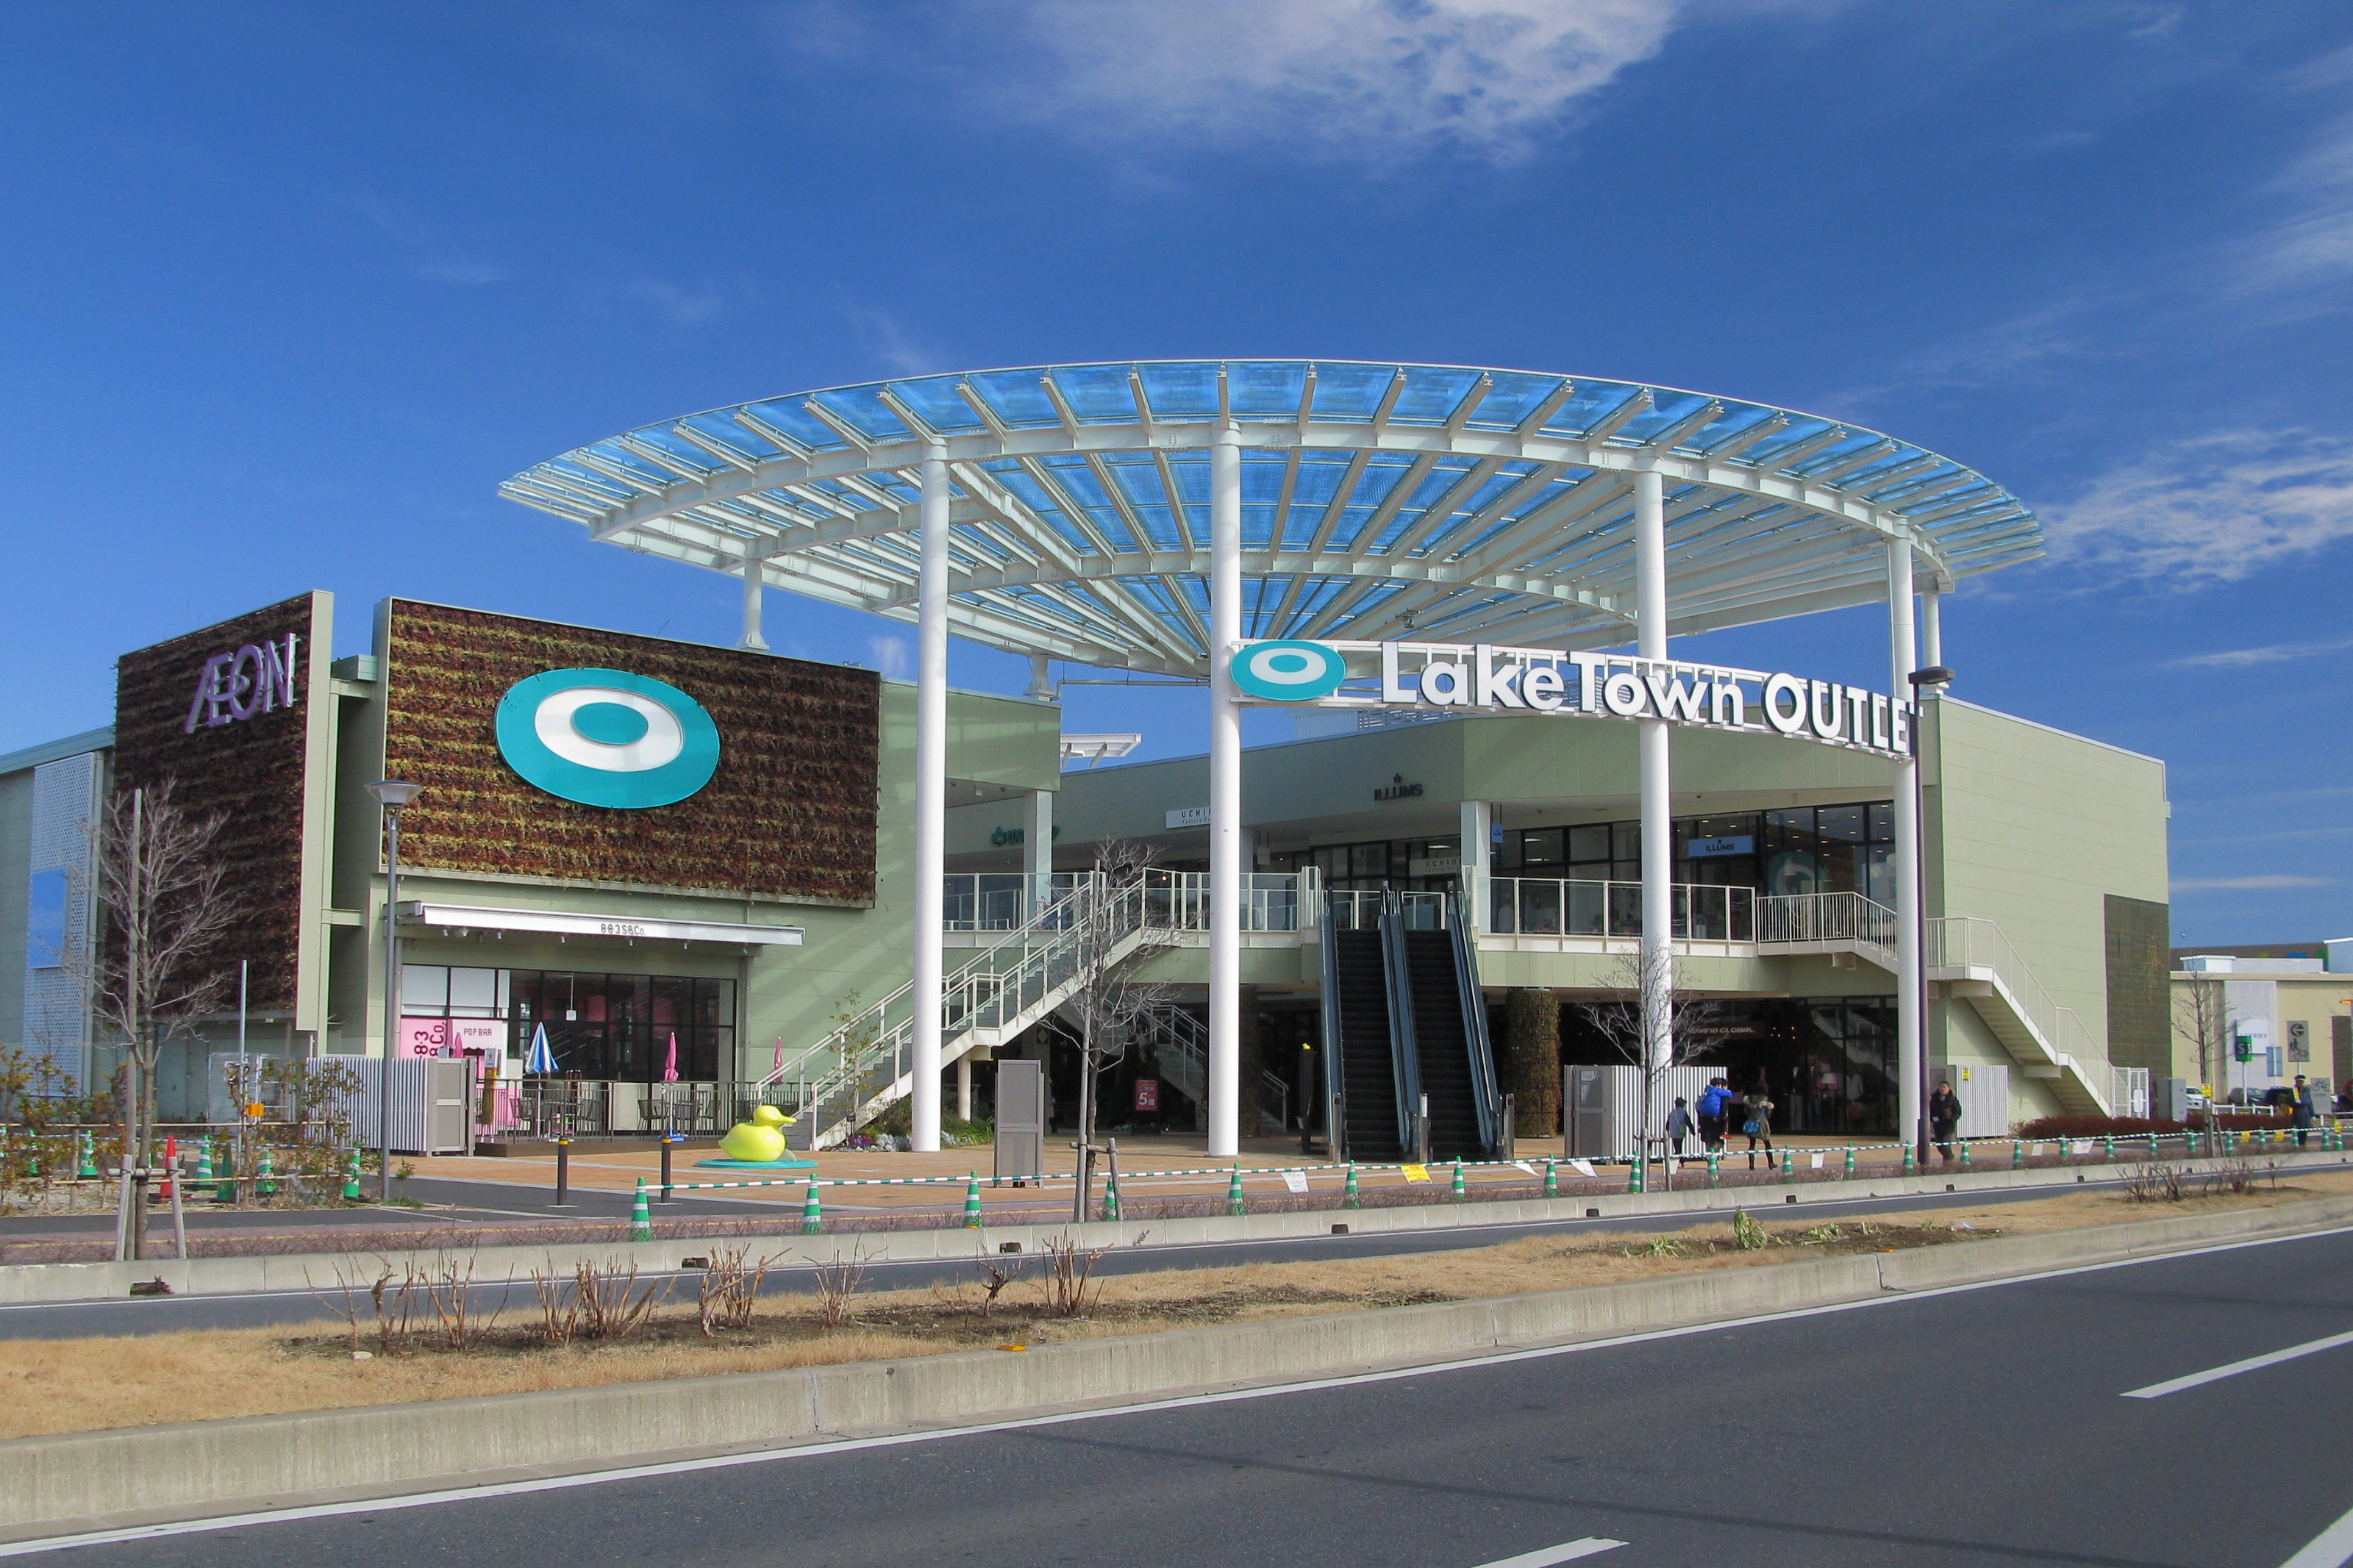 Koshigaya_AEON_Laketown_Outlet_1st_Ave._Entrance_1